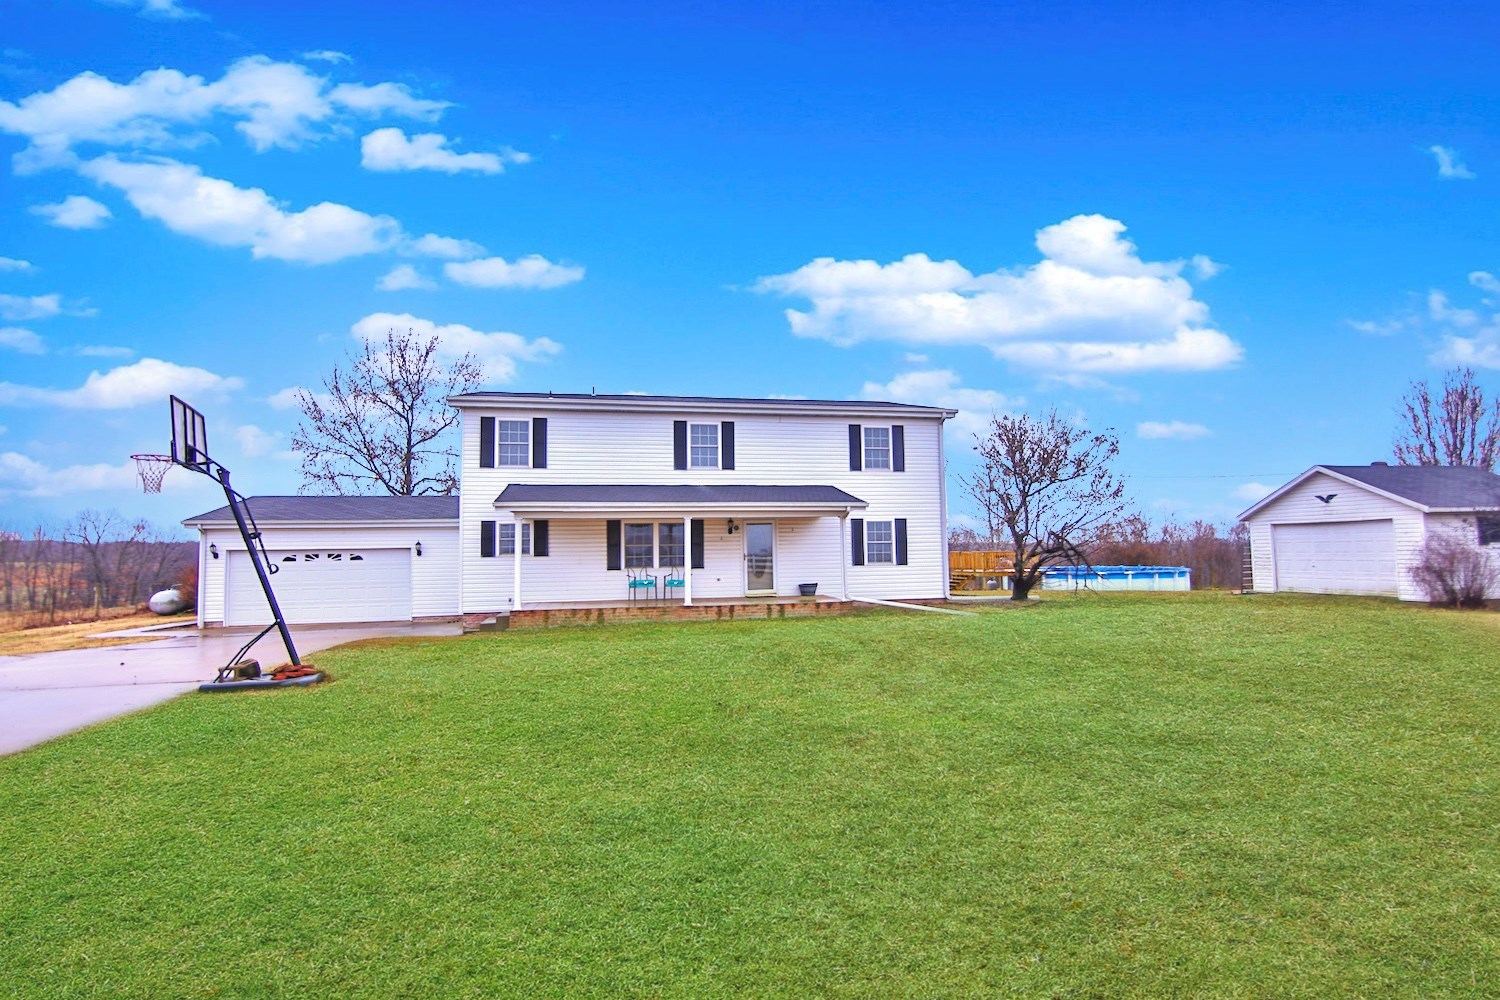 Country Home and Farm for Sale in Tecumseh, MO